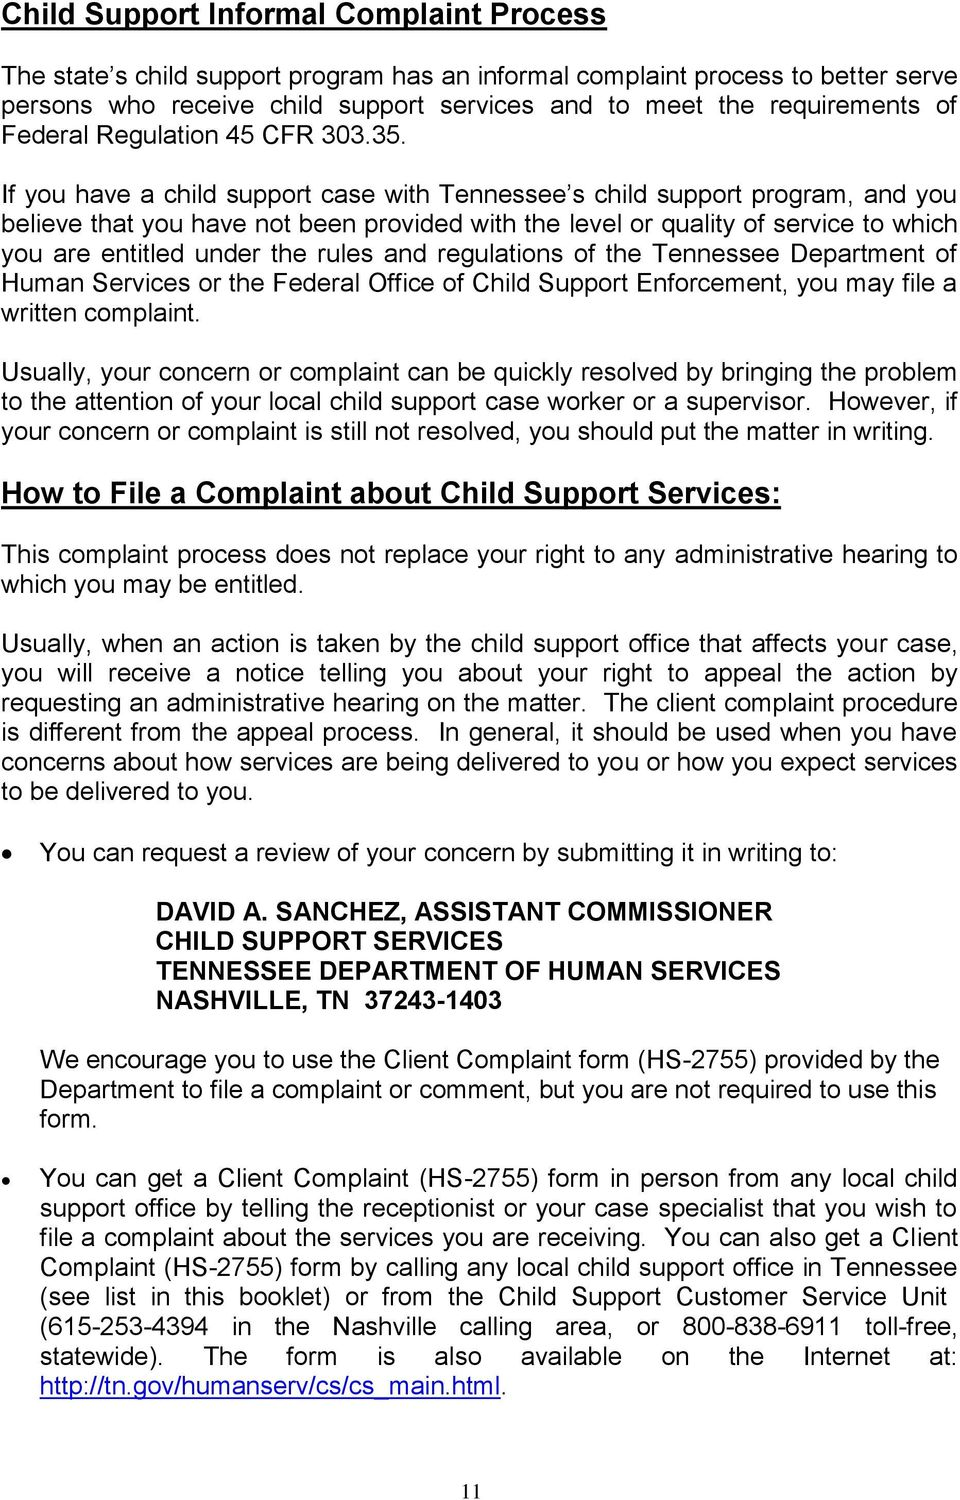 If you have a child support case with Tennessee s child support program, and you believe that you have not been provided with the level or quality of service to which you are entitled under the rules